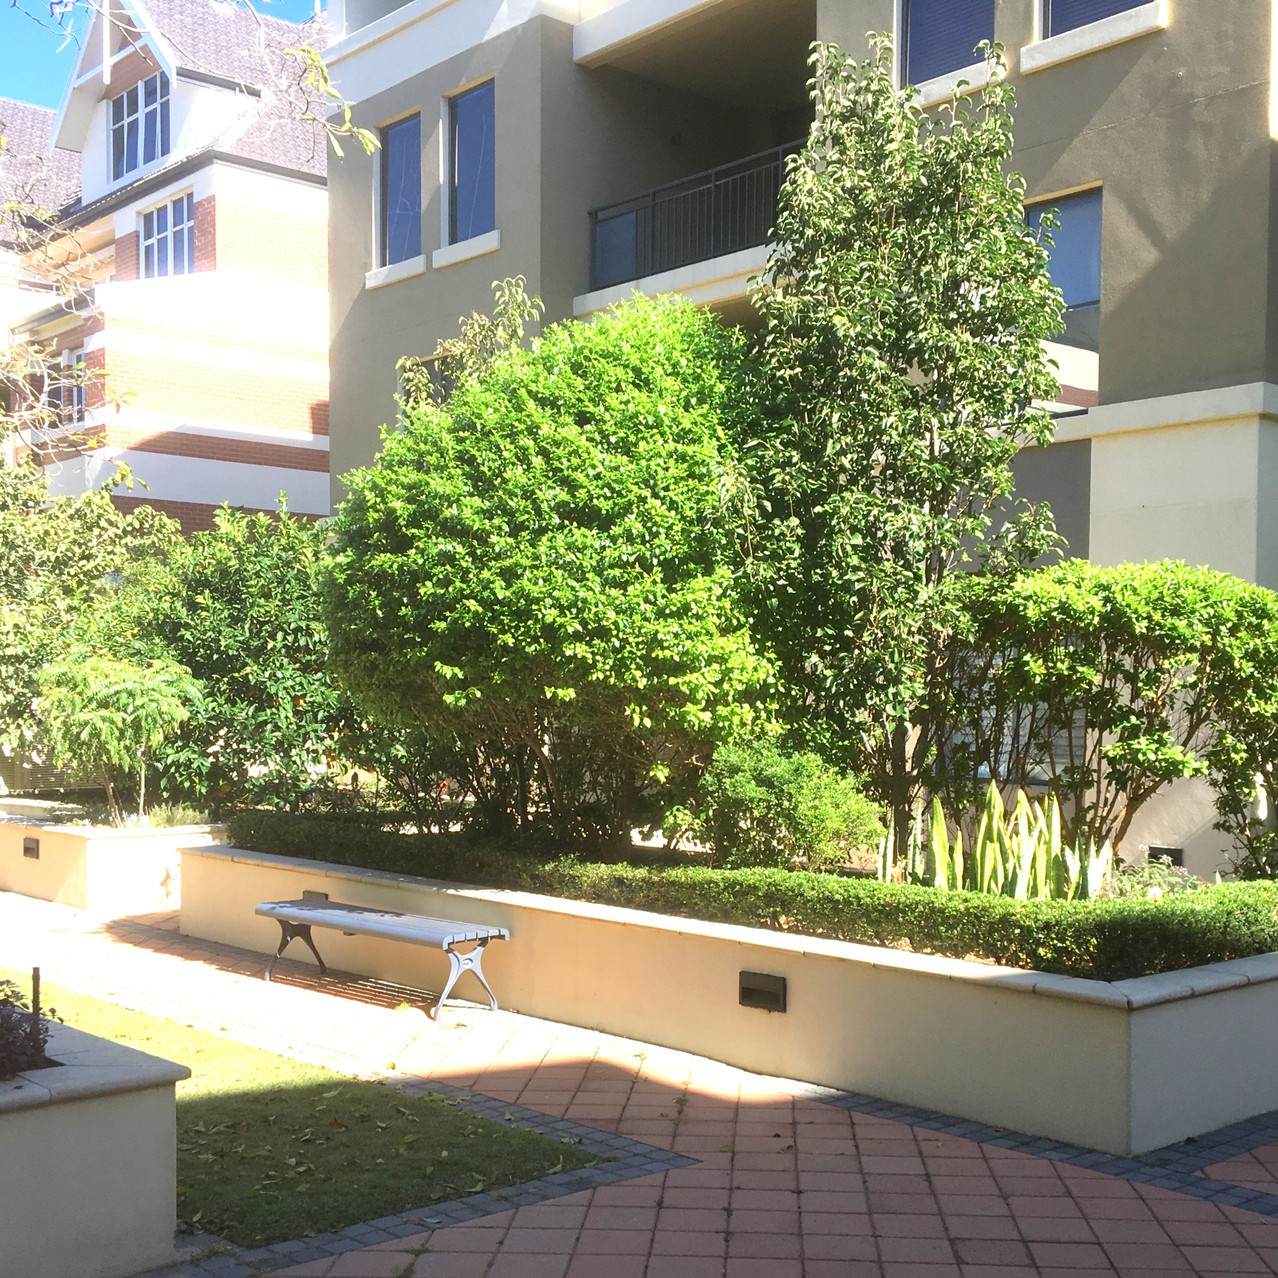 Conspar was engaged by the owners of these residential strata apartments in Subiaco to carry out structural restoration works of moisture-damaged garden beds.